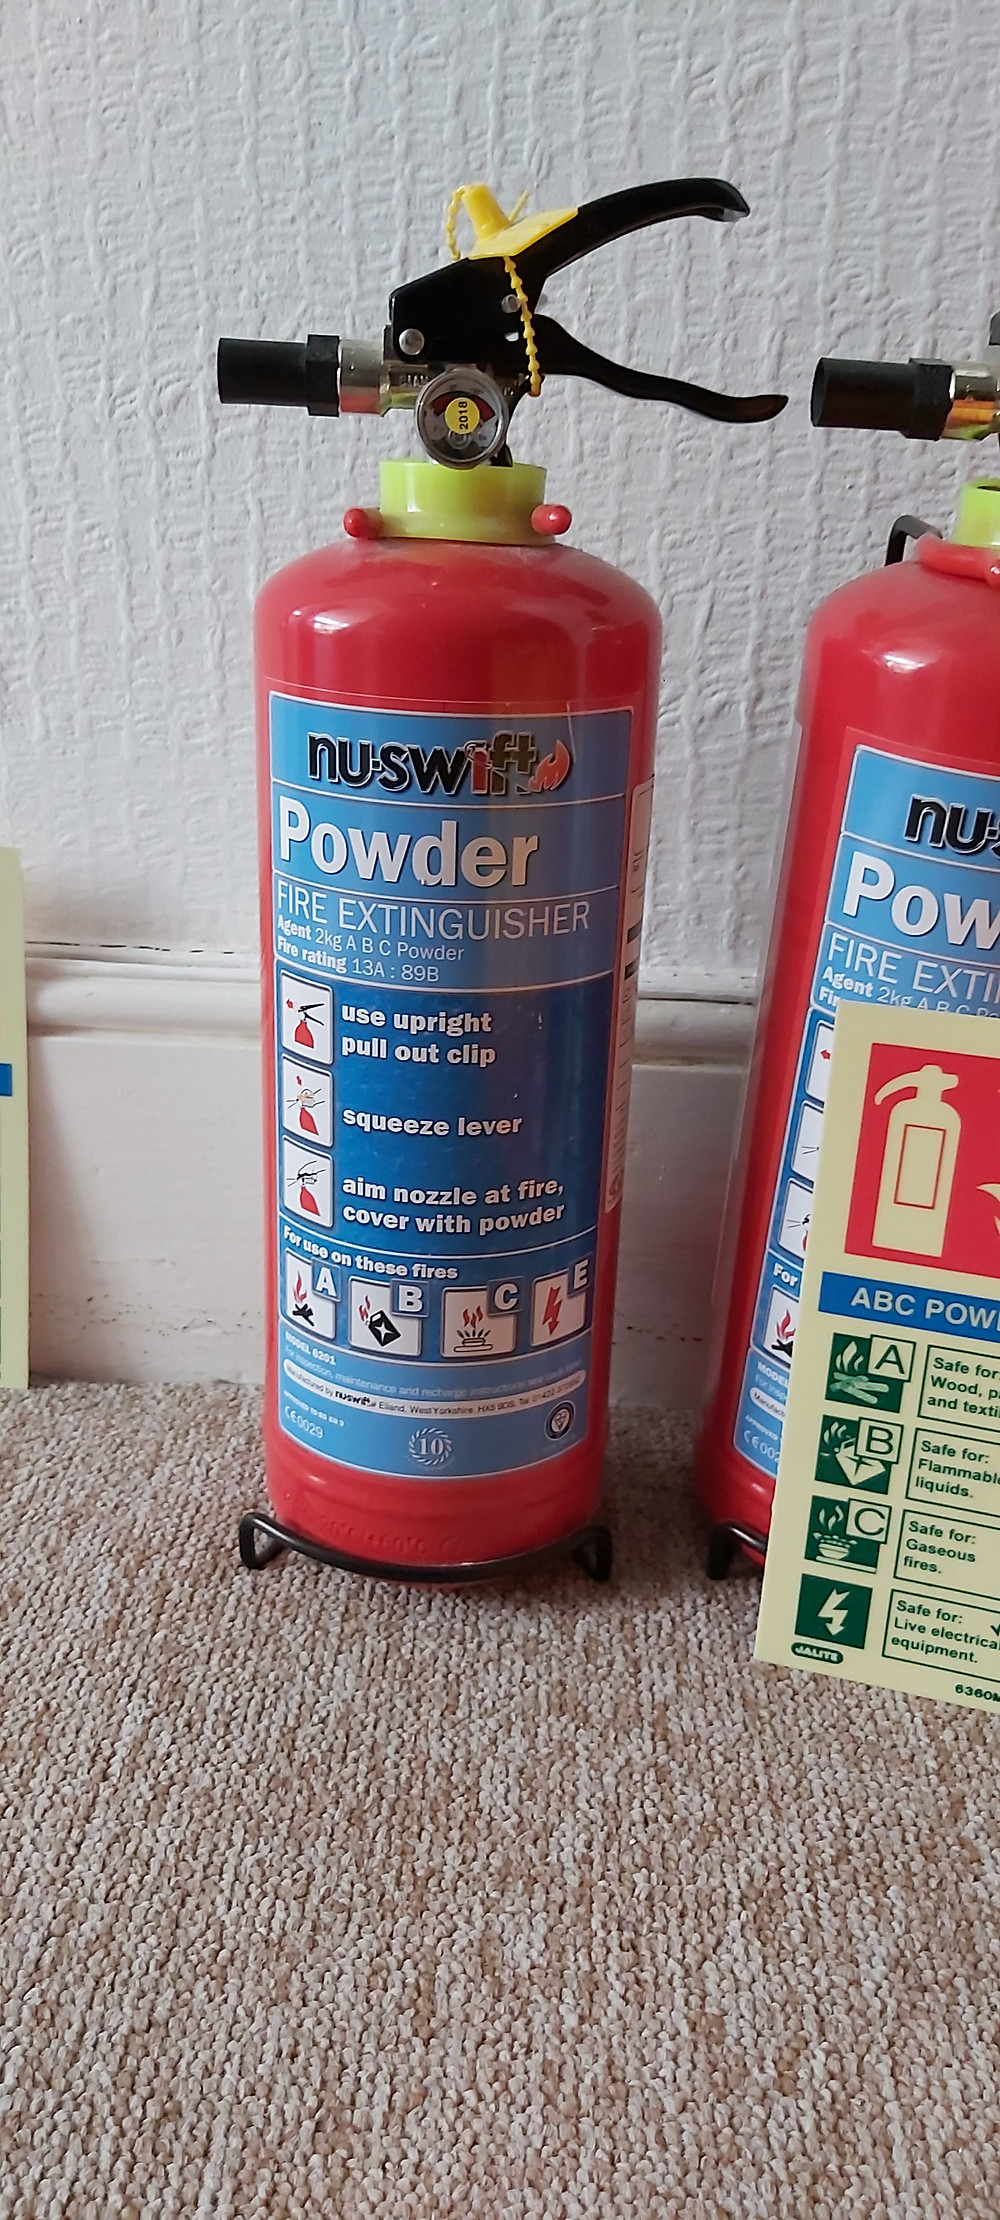 Fire extinguisher servicing portsmouth